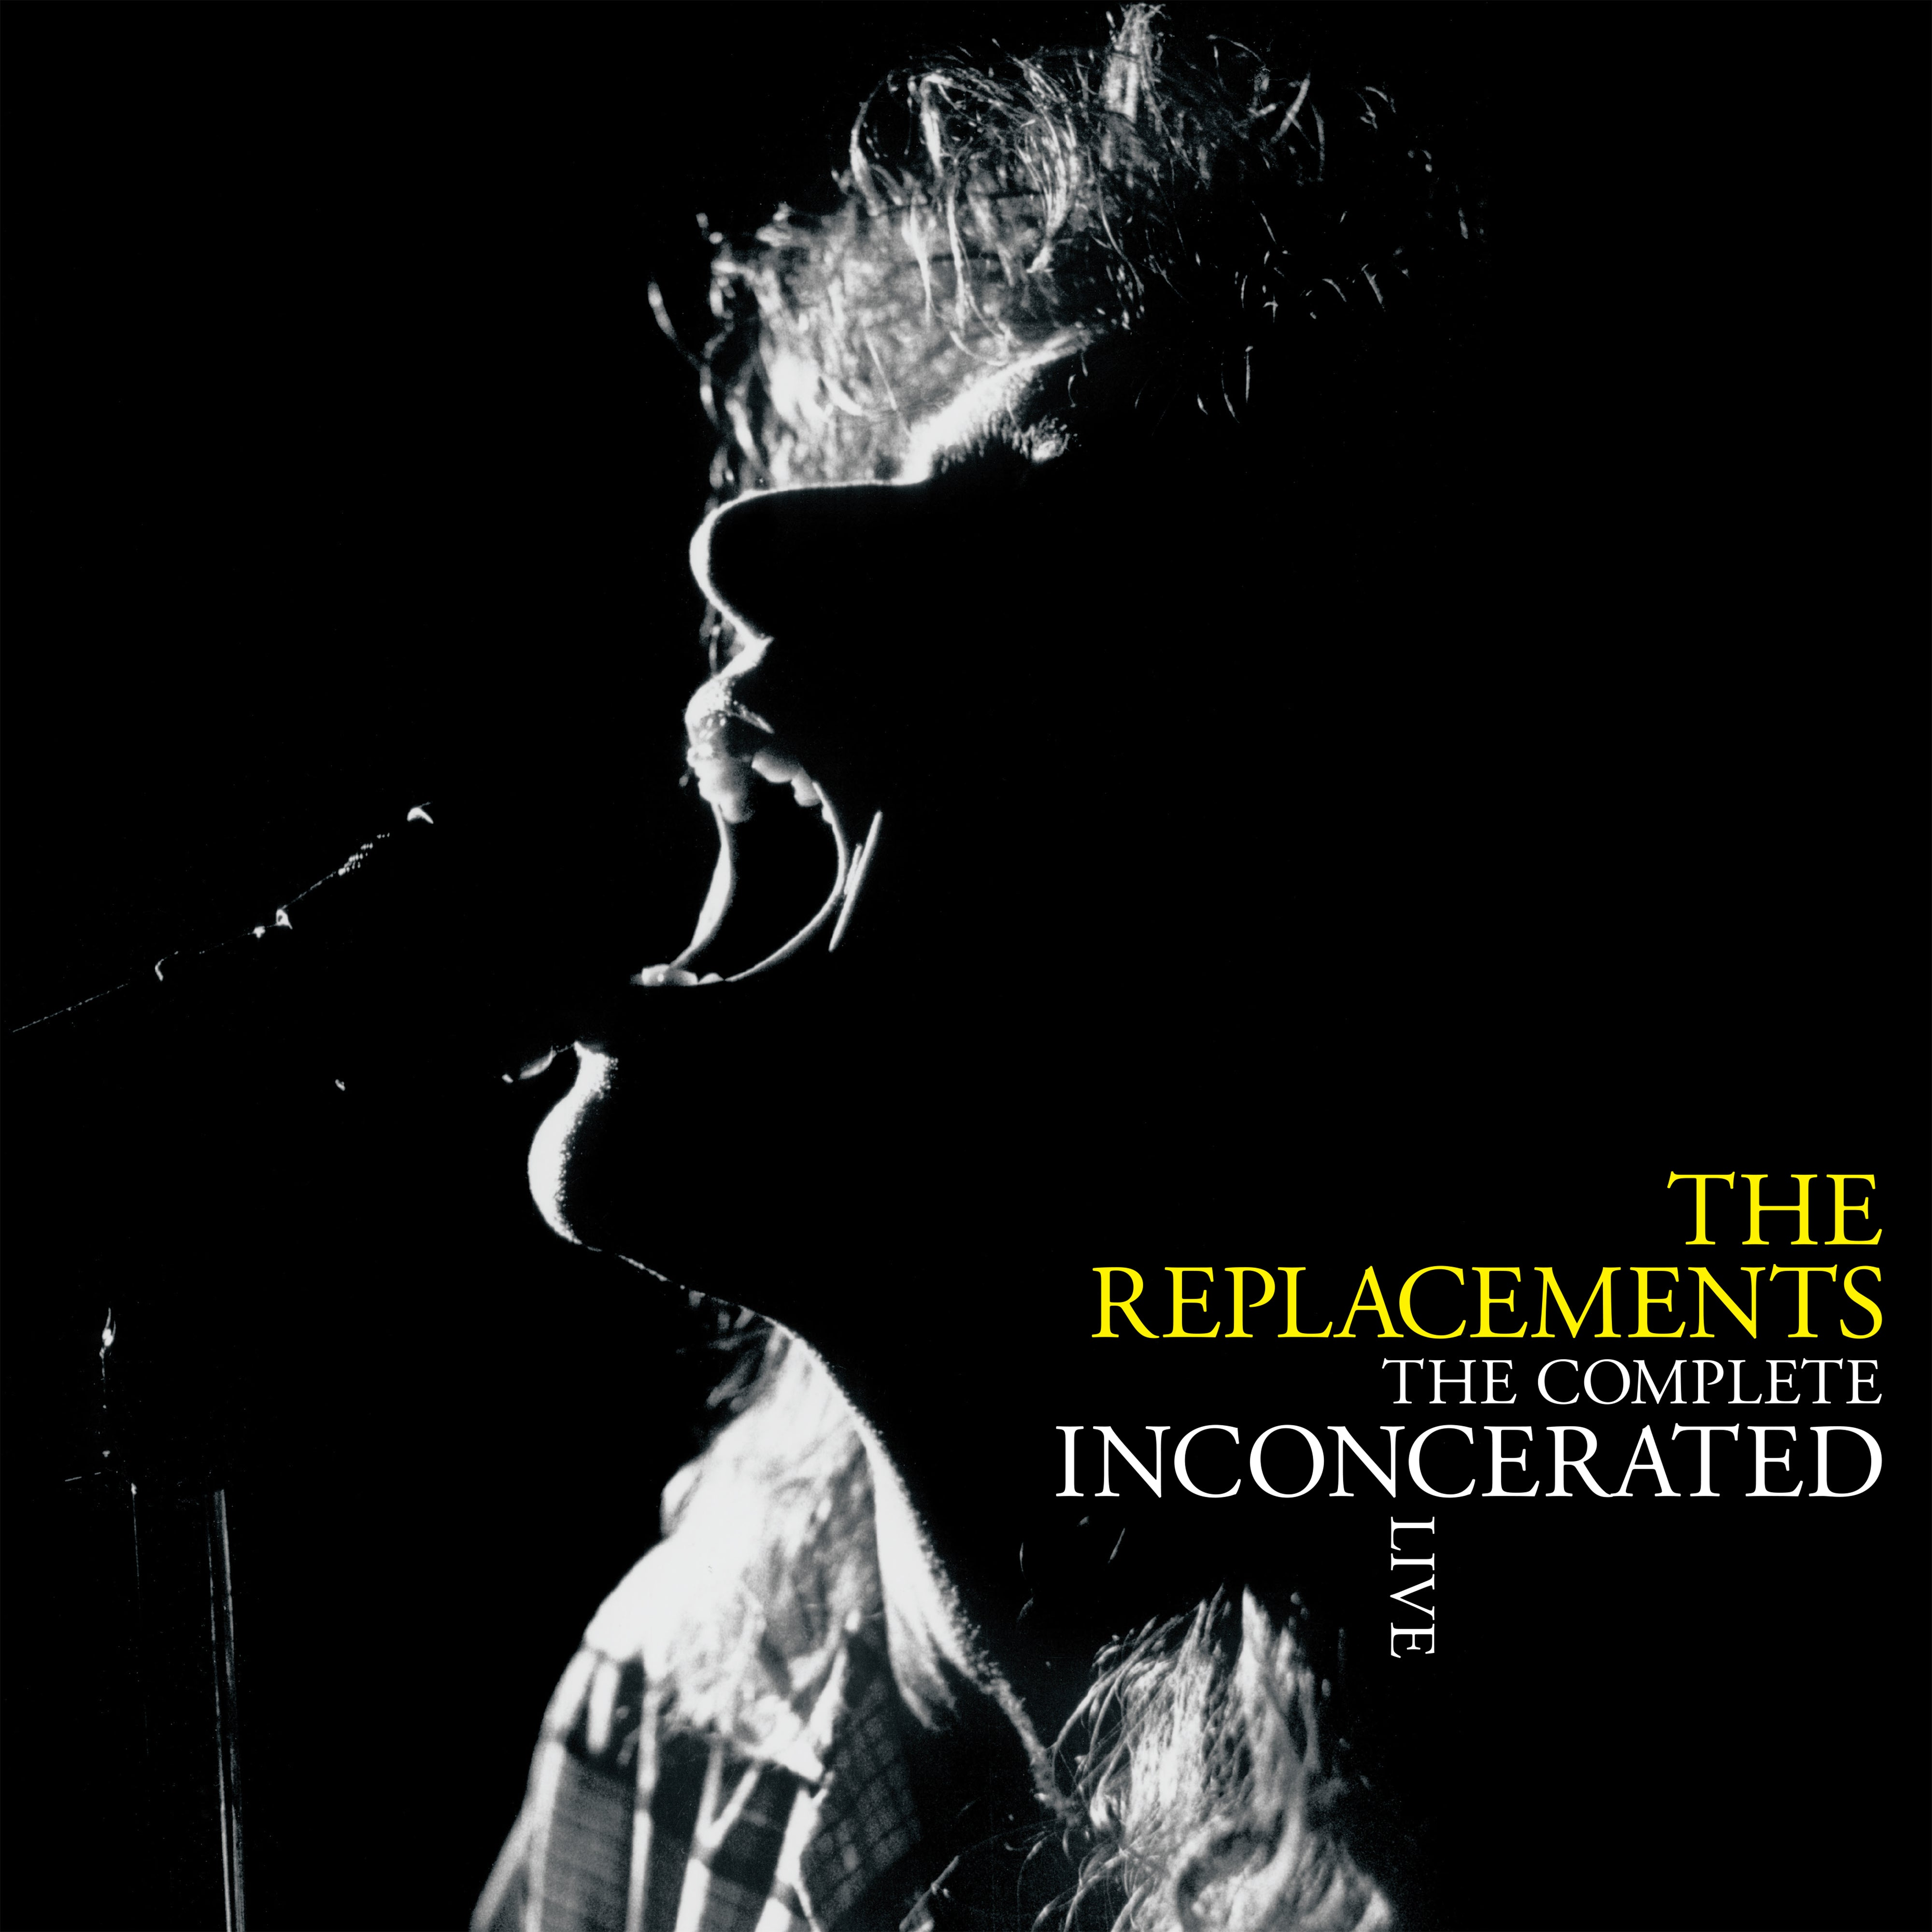 The Replacements - The Complete Inconcerated Live (RSD 2020 Drop Two) 3LP 180g Vinyl Record Album